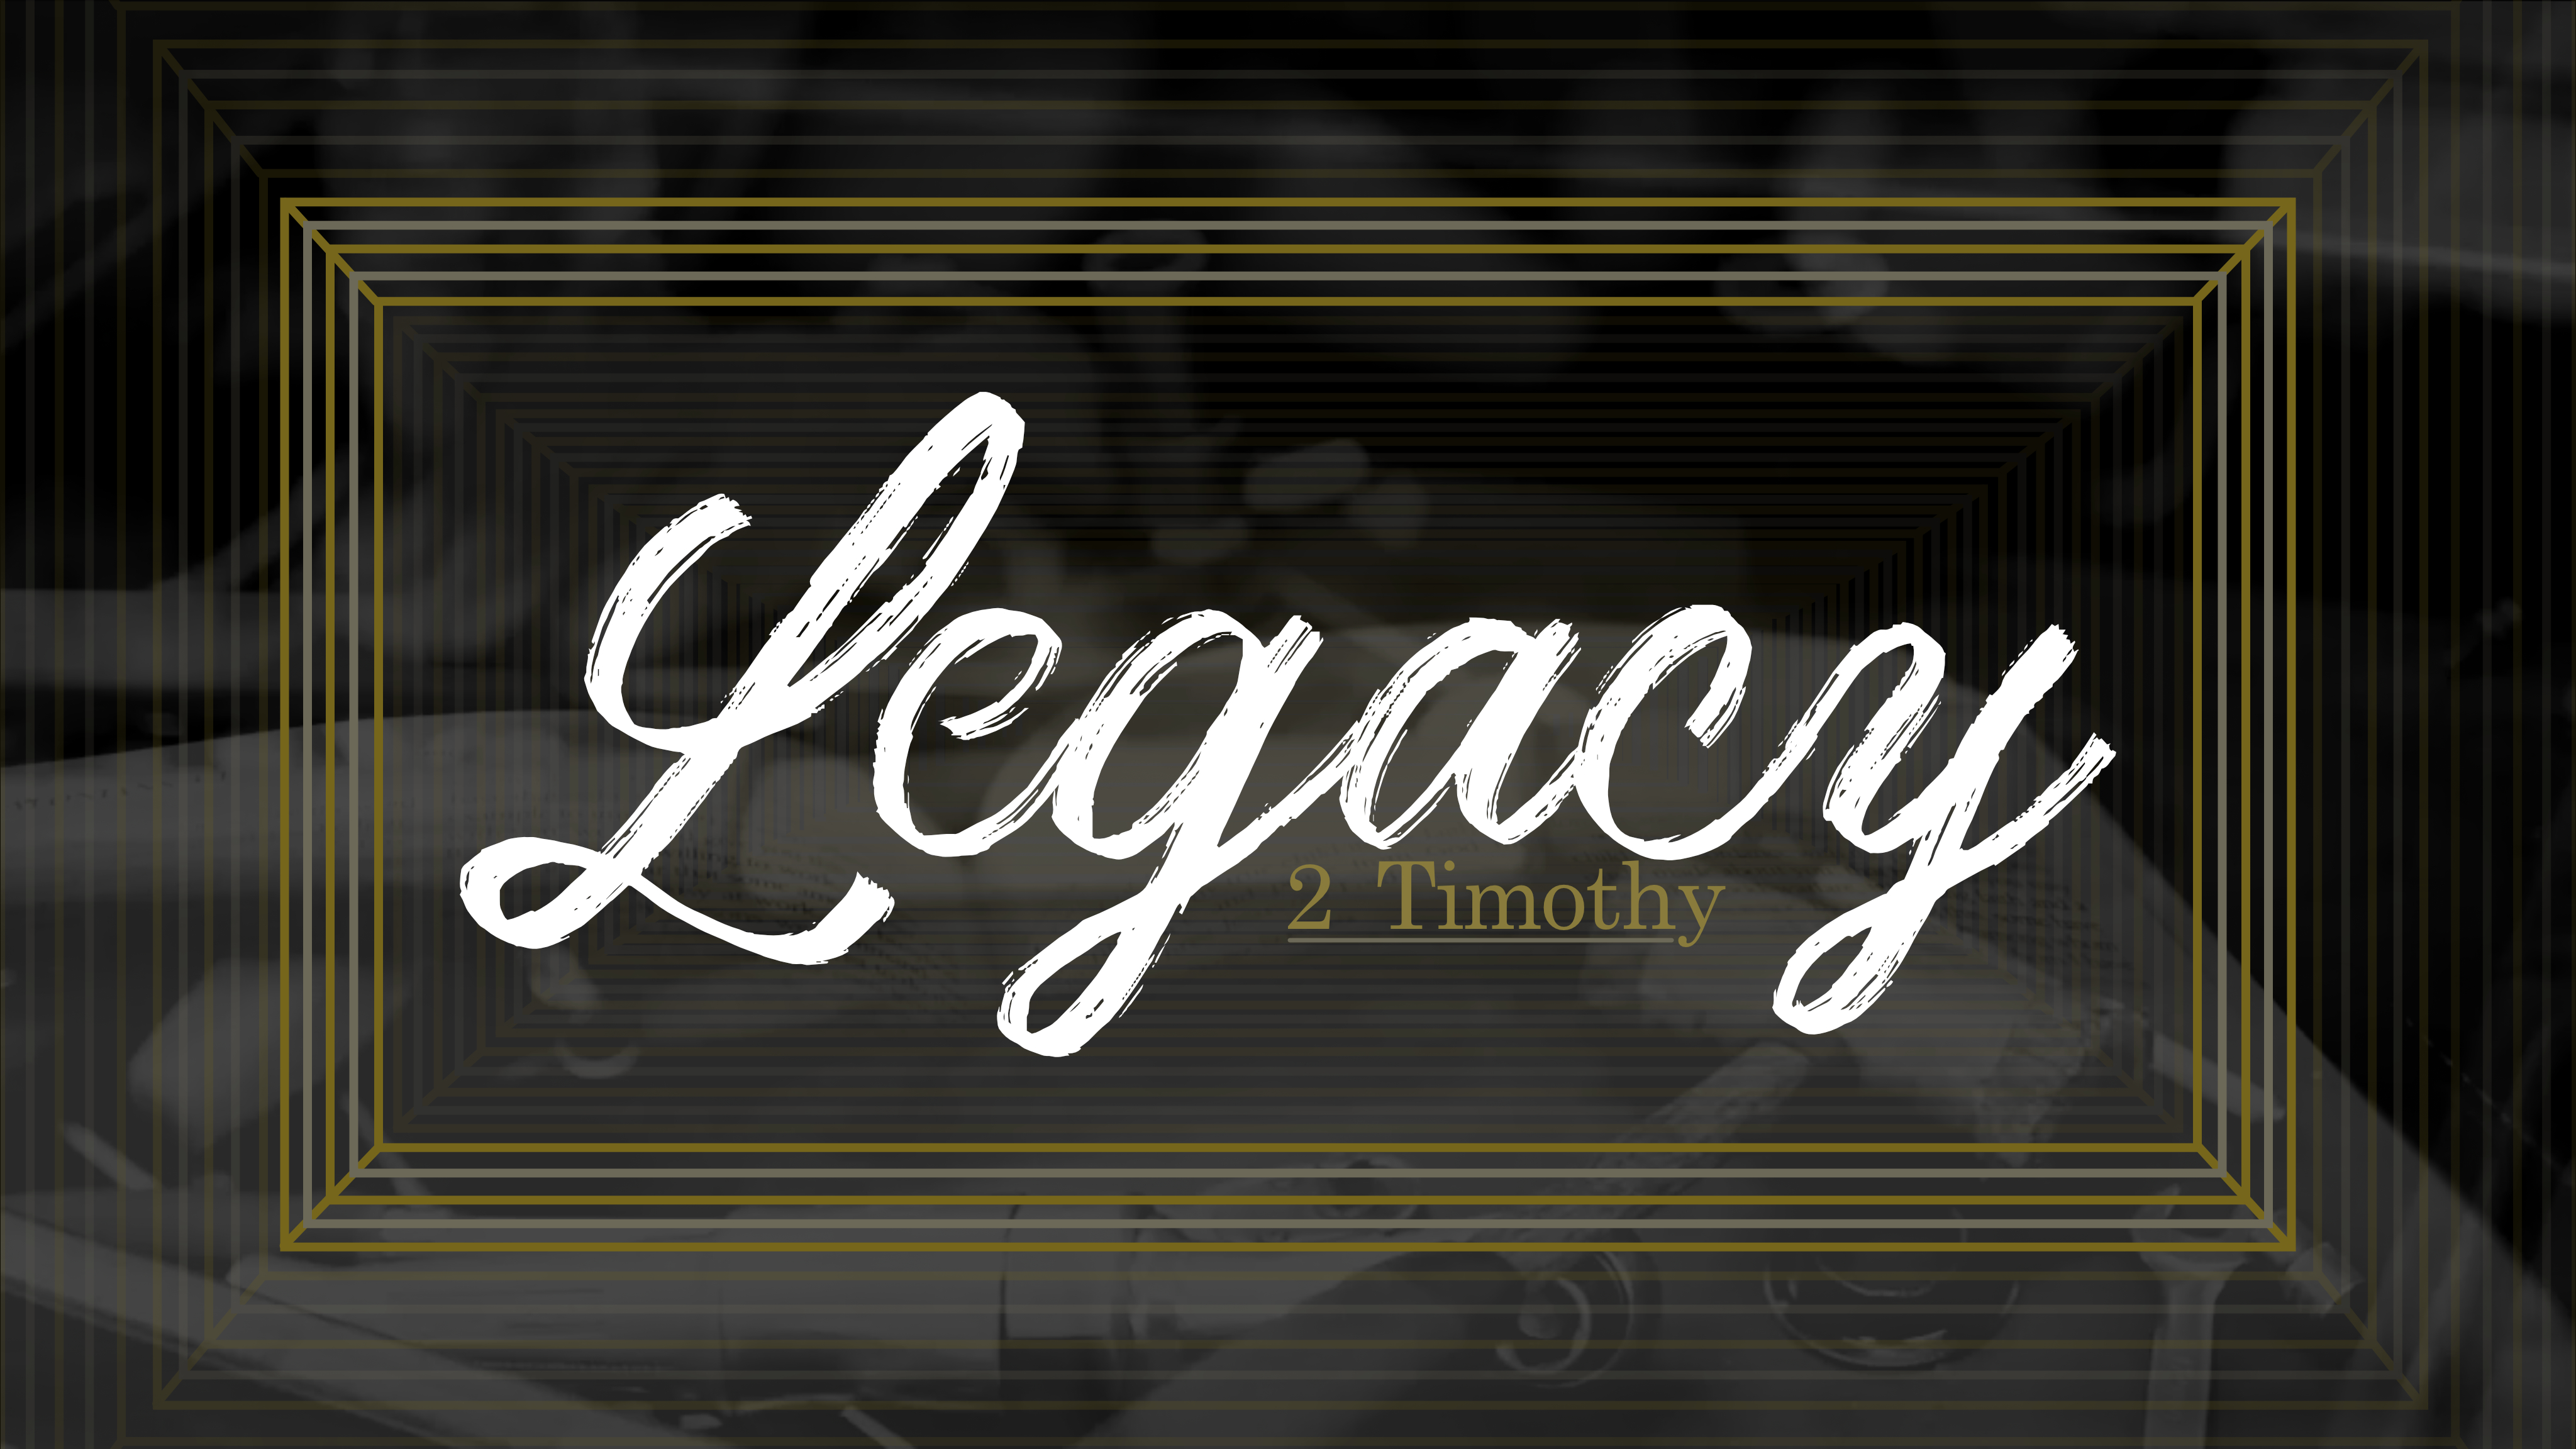 May 2nd, 2021 - Legacy - Week 11